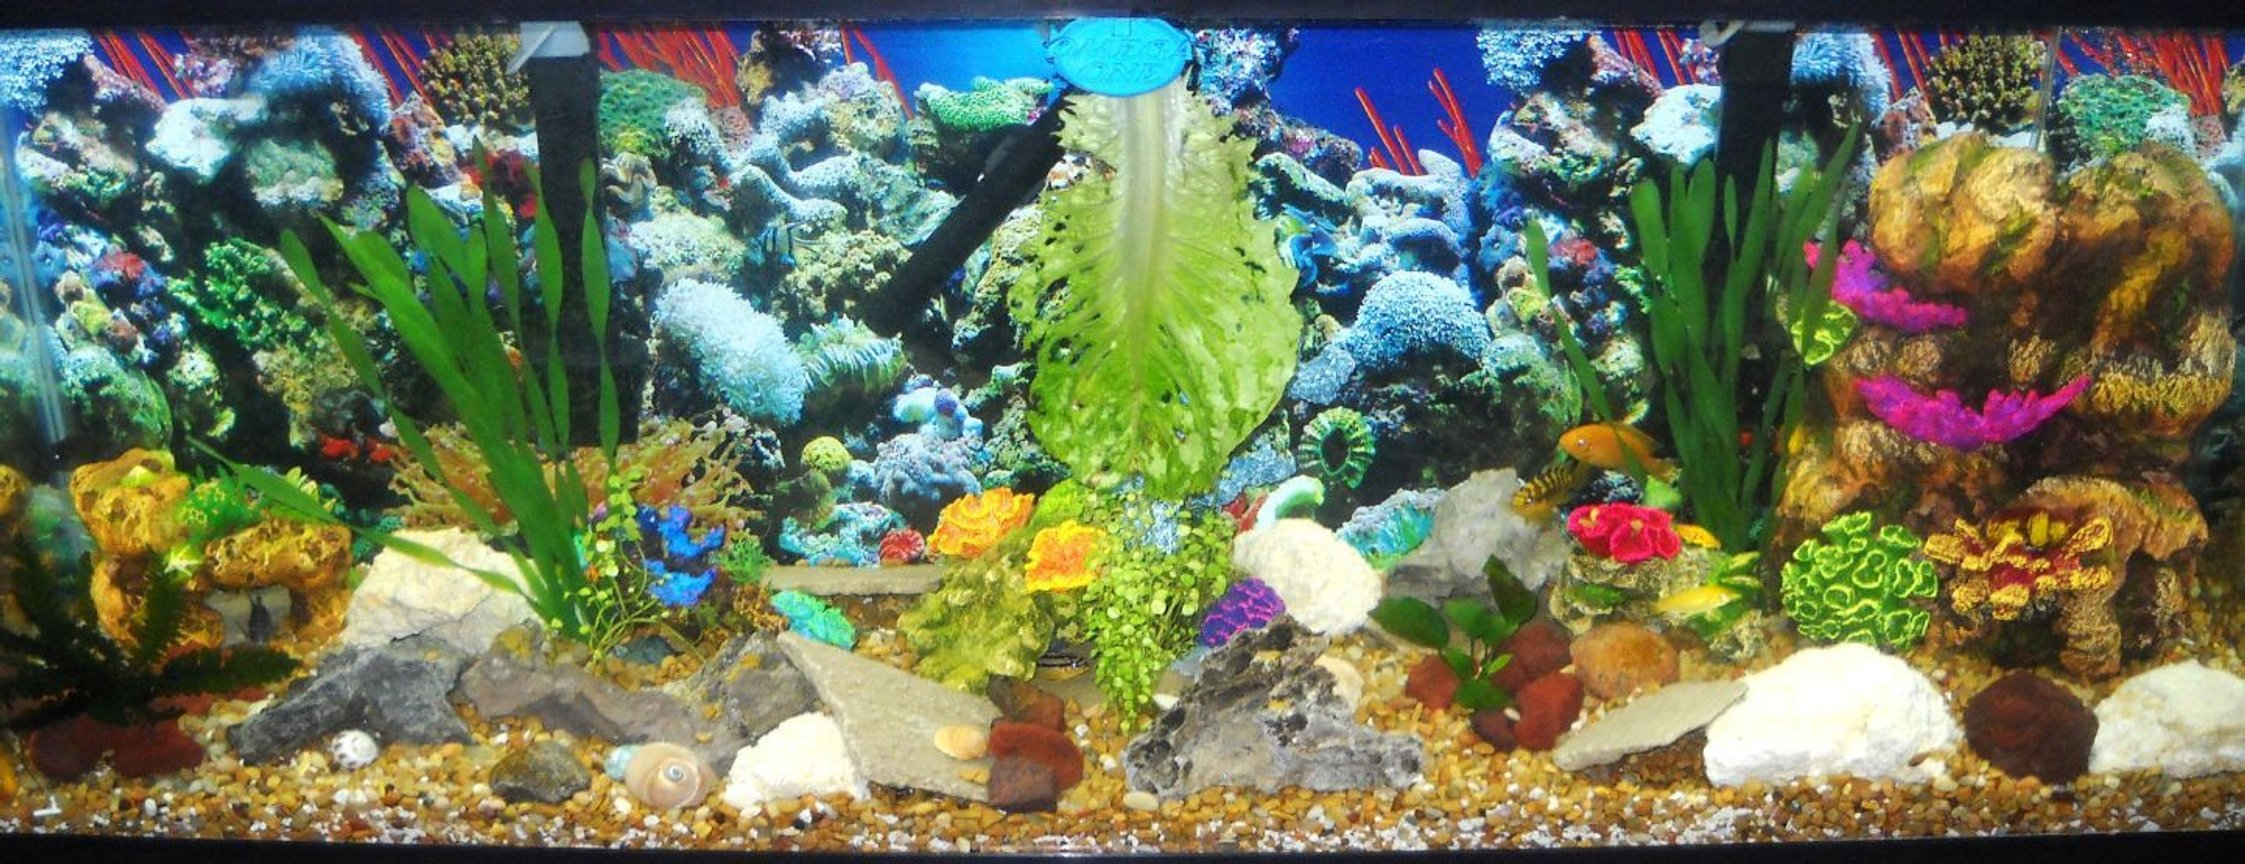 55 gallons reef tank (mostly live coral and fish) - 55g african cichlid